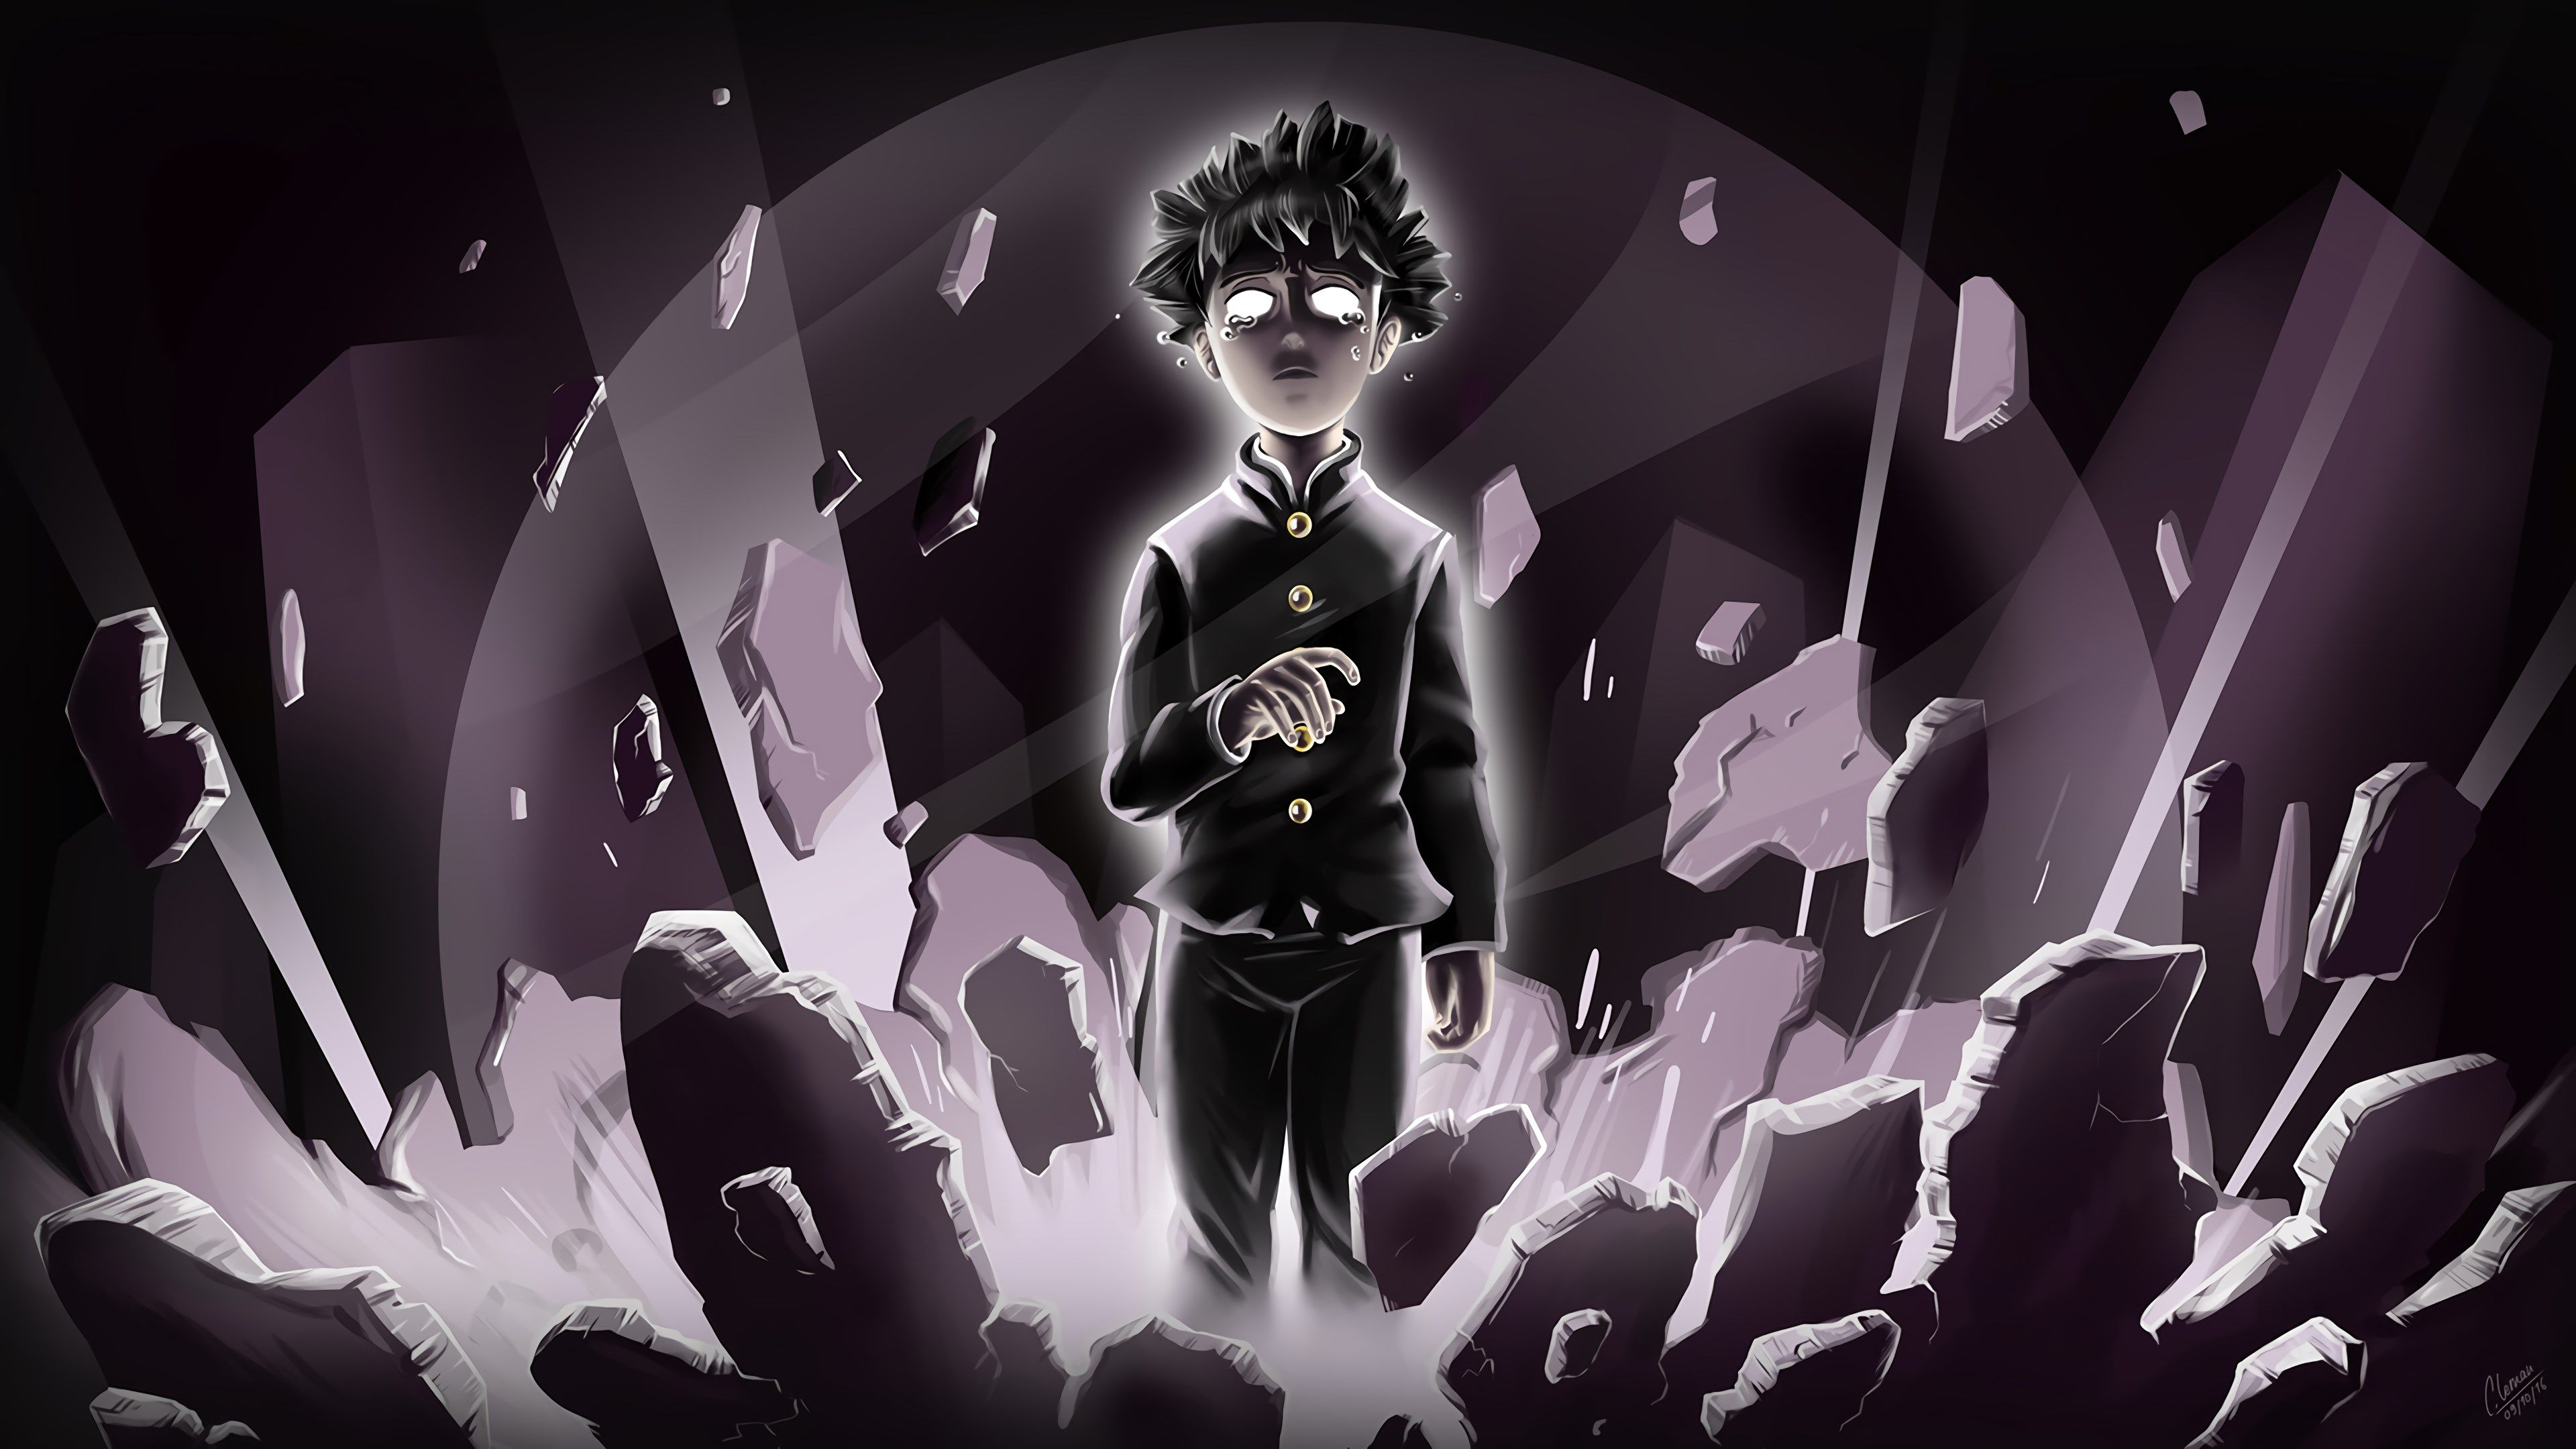 Mob Psycho 100 Full Hd Wallpaper Photo Mob Psycho